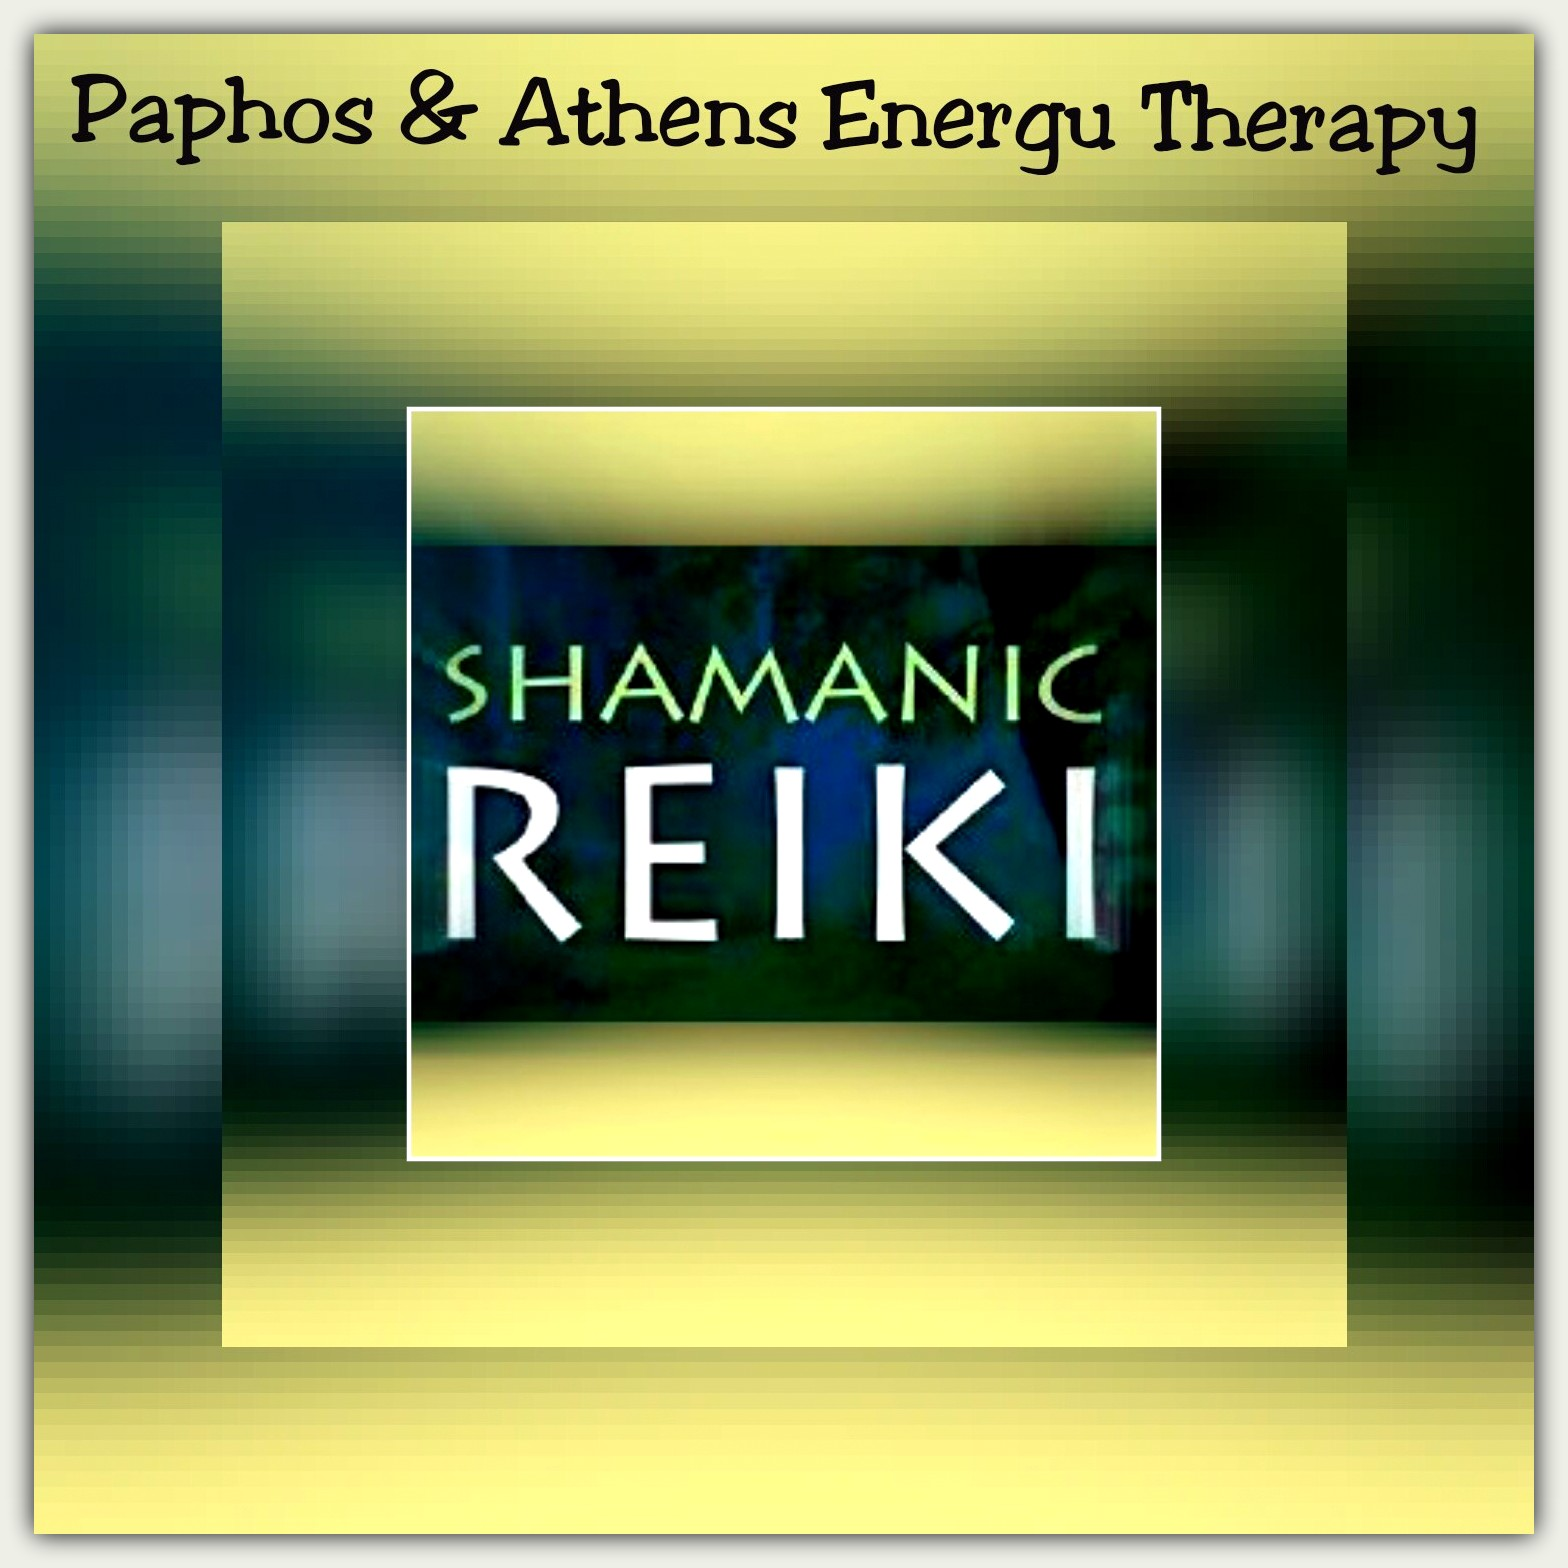 ~Paphos & Athens Energy Therapy